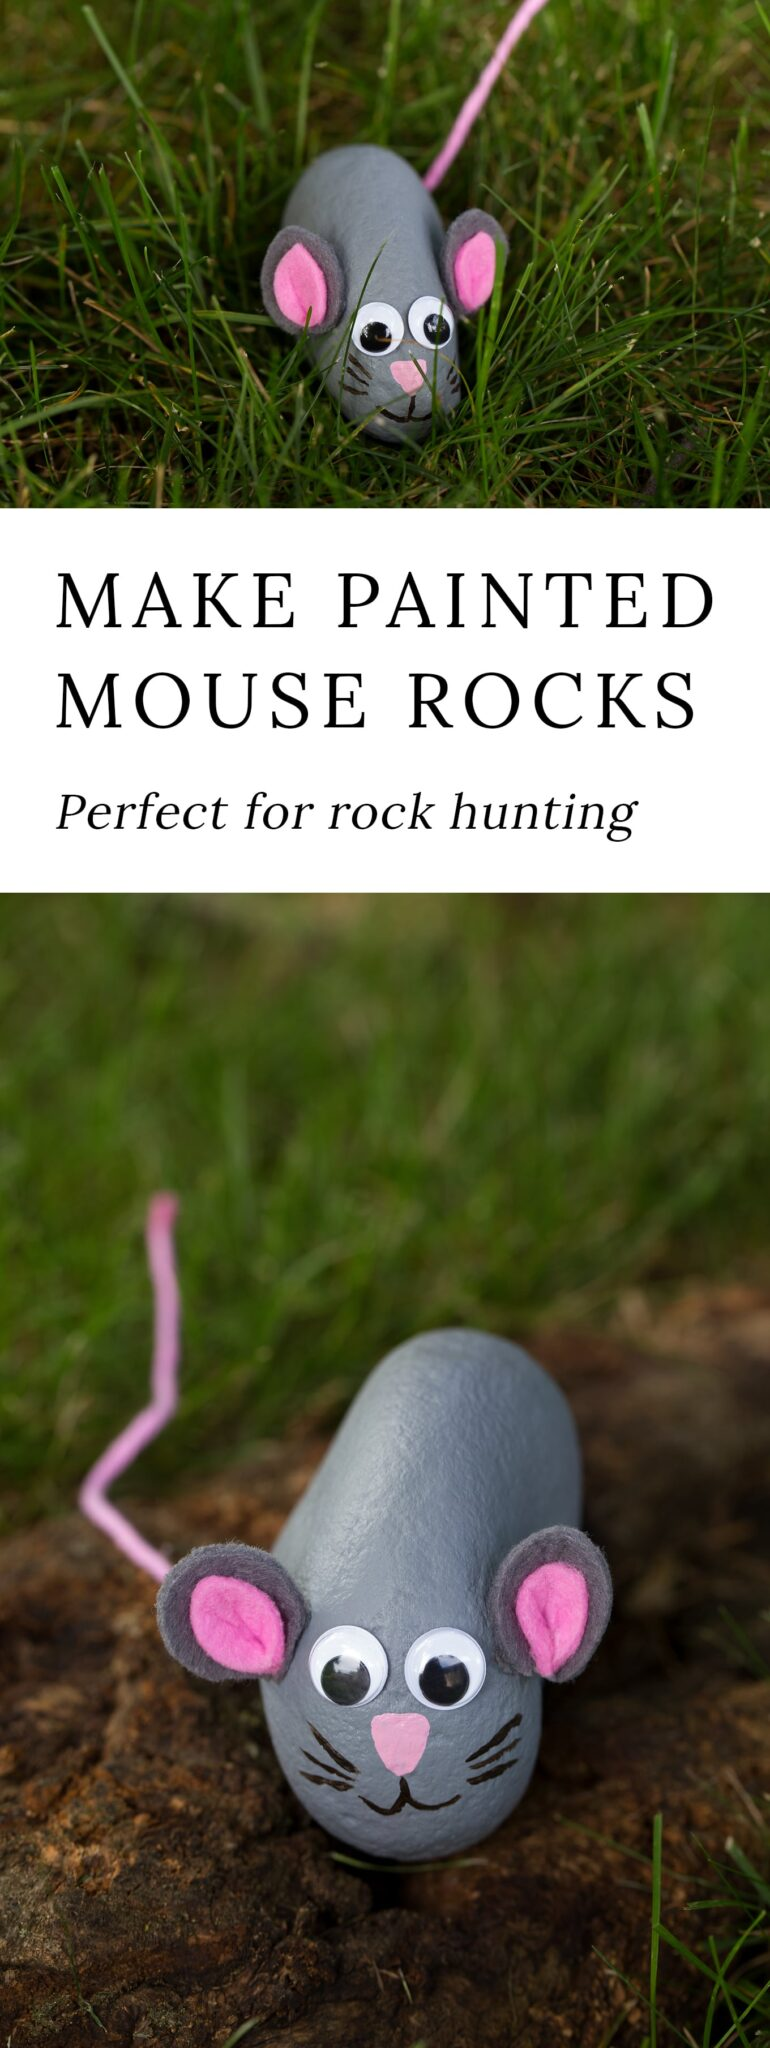 If your family has caught the rock hunting bug, you will love making a painted rock mouse. This fun painted rock craft is perfect for kids!